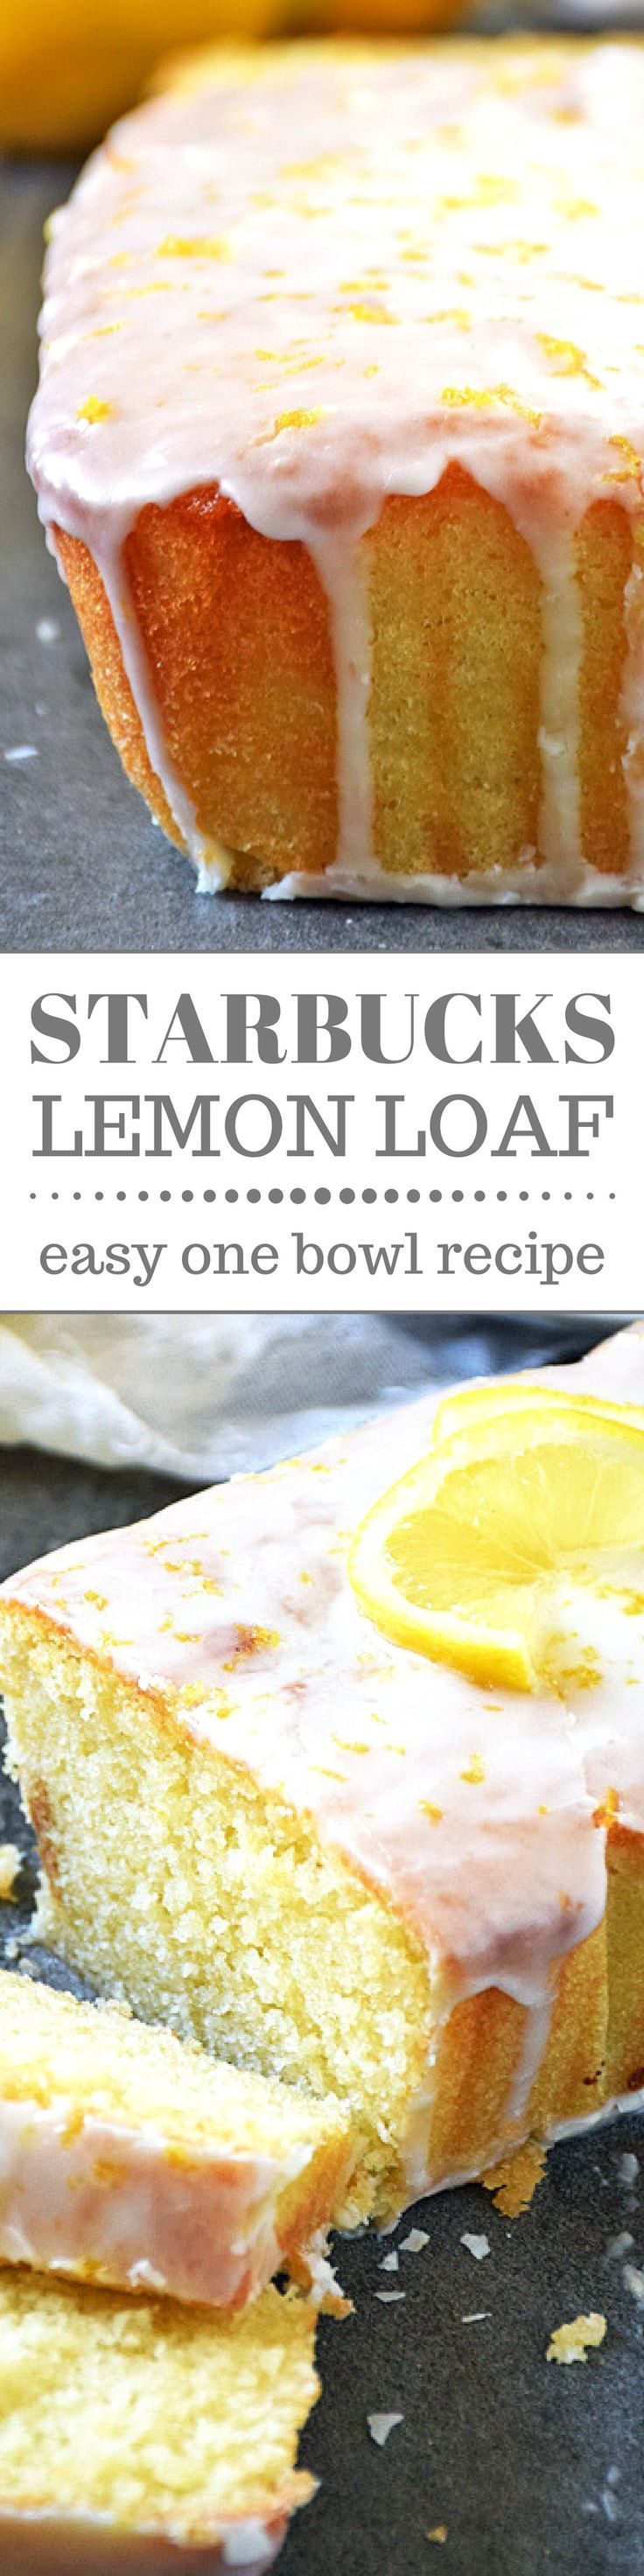 Now you can enjoy the deliciously tangy Starbucks Lemon Loaf for breakfast, snack, dessert, or anytime without even leaving the house and you'll save money too! This copycat cake recipe is easy to mak (Favorite Desserts Family)